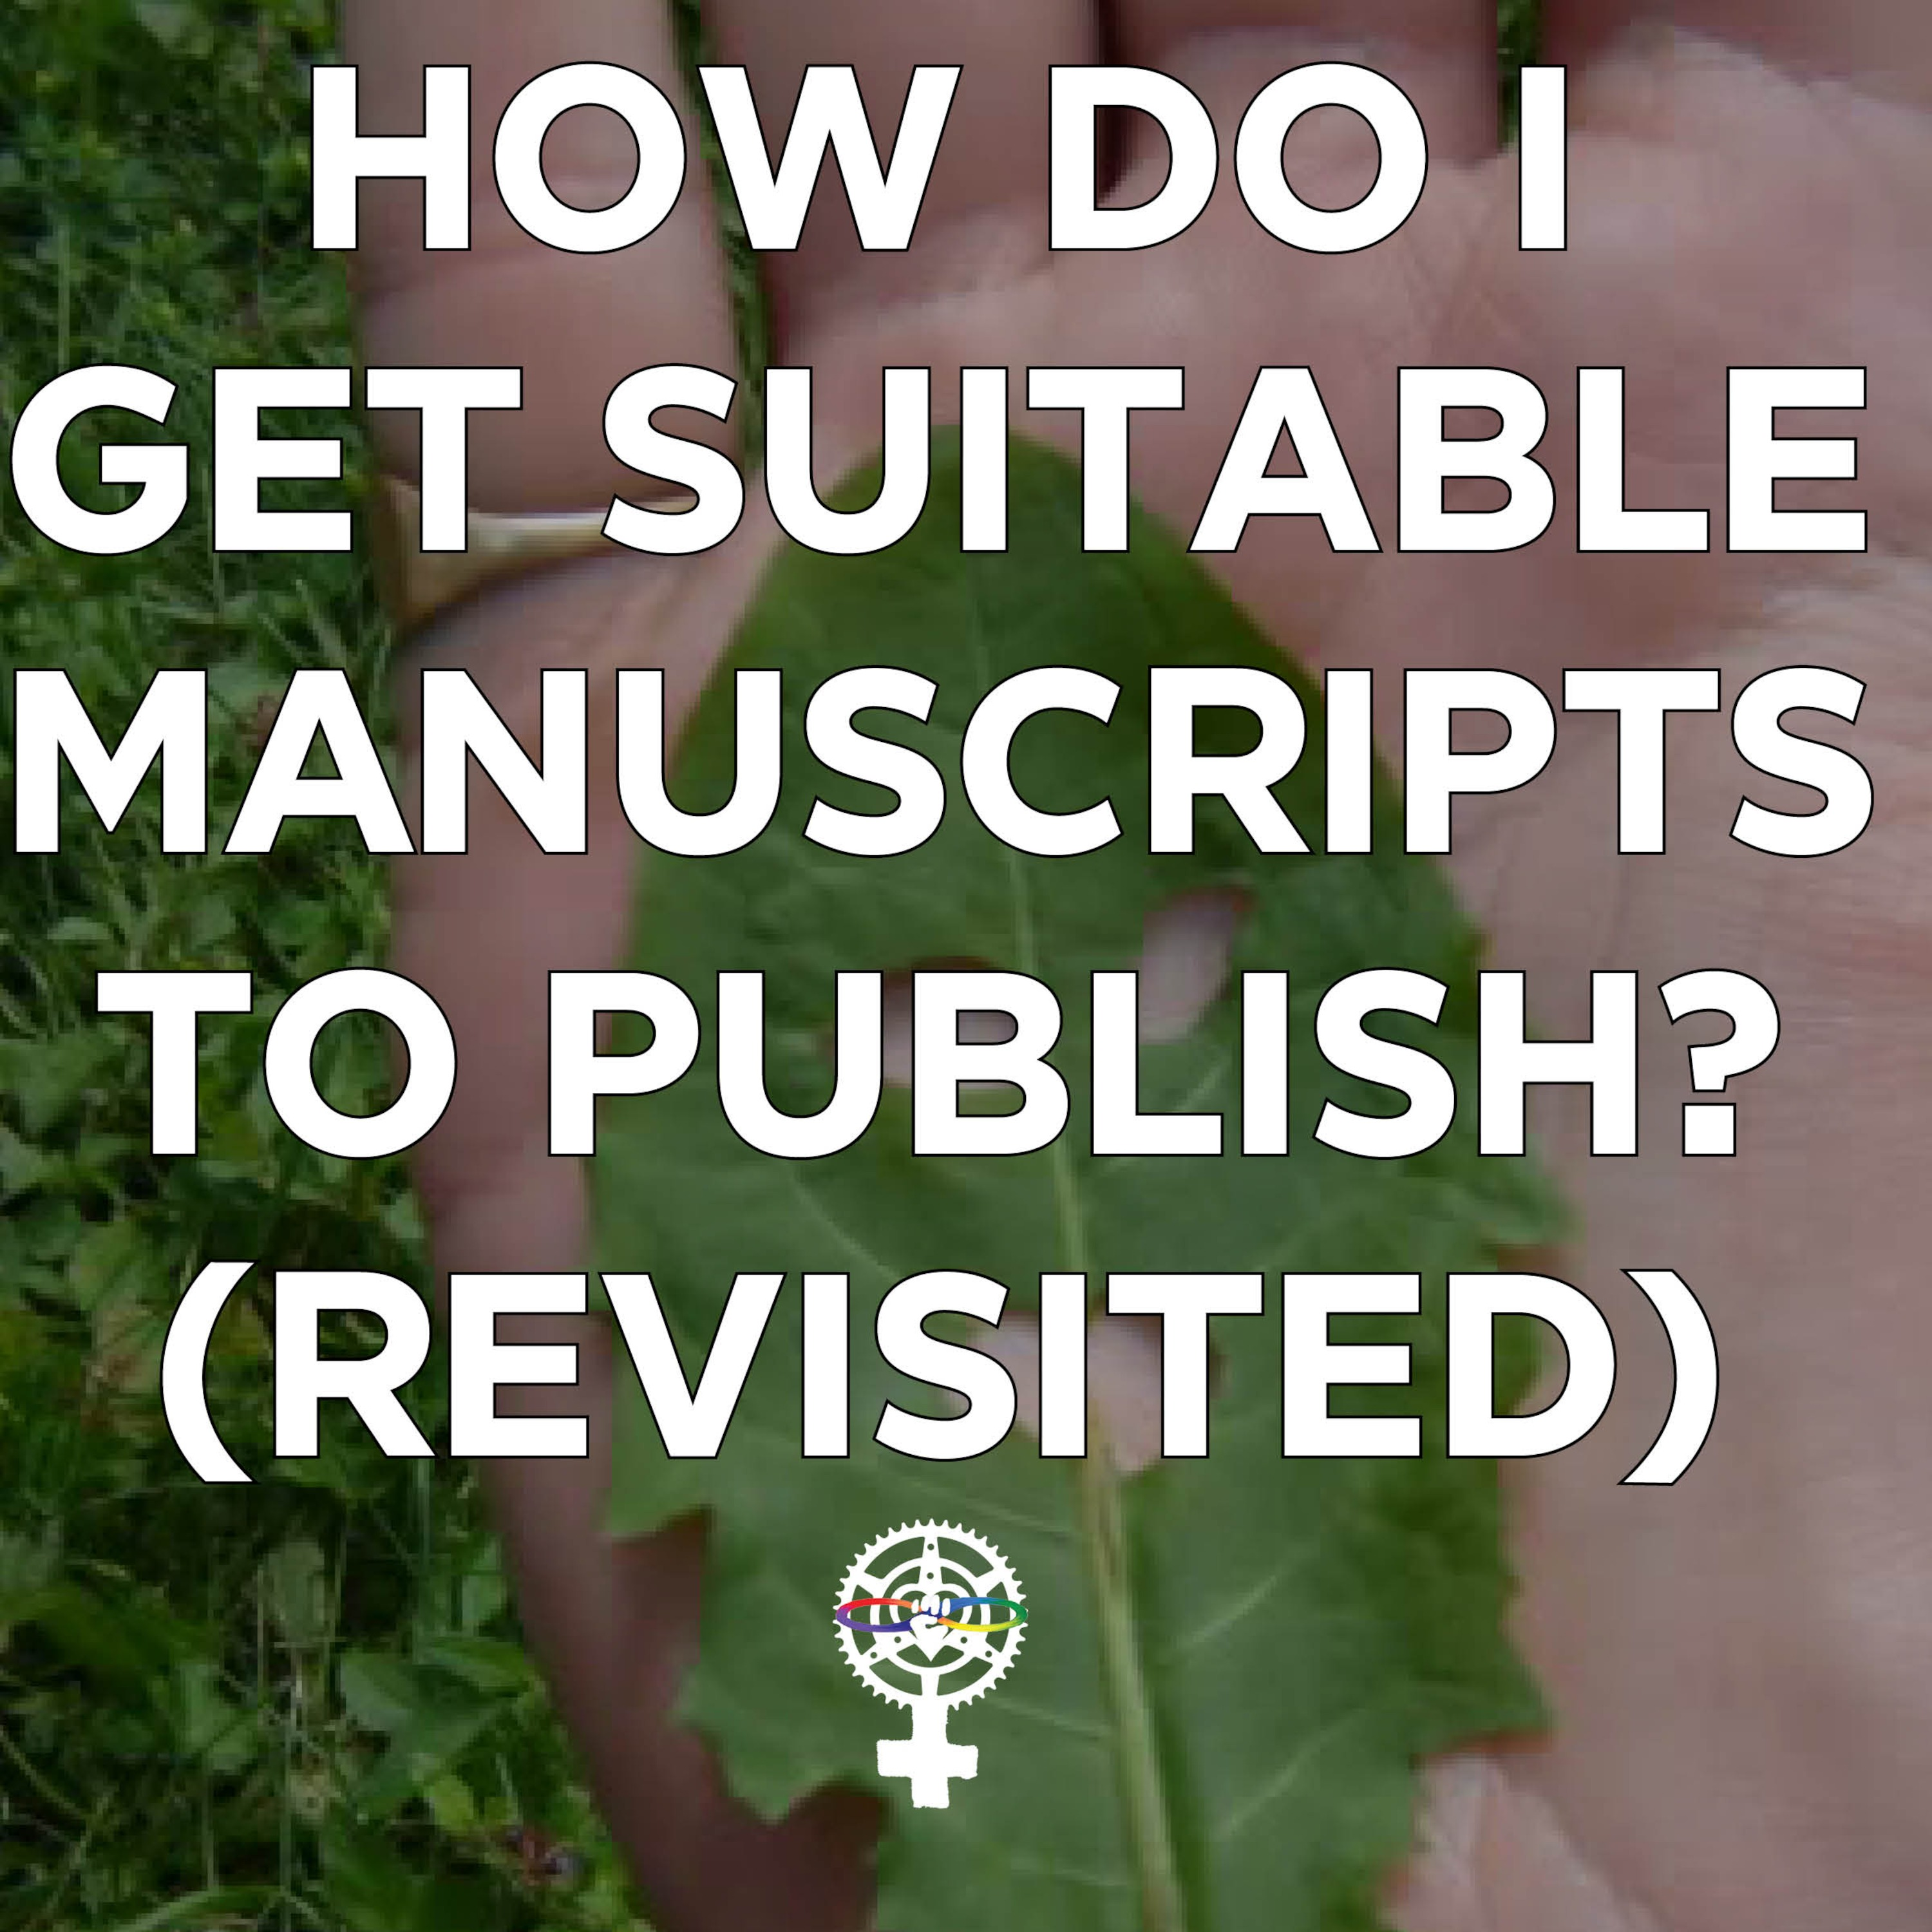 How do I get suitable manuscripts to publish?